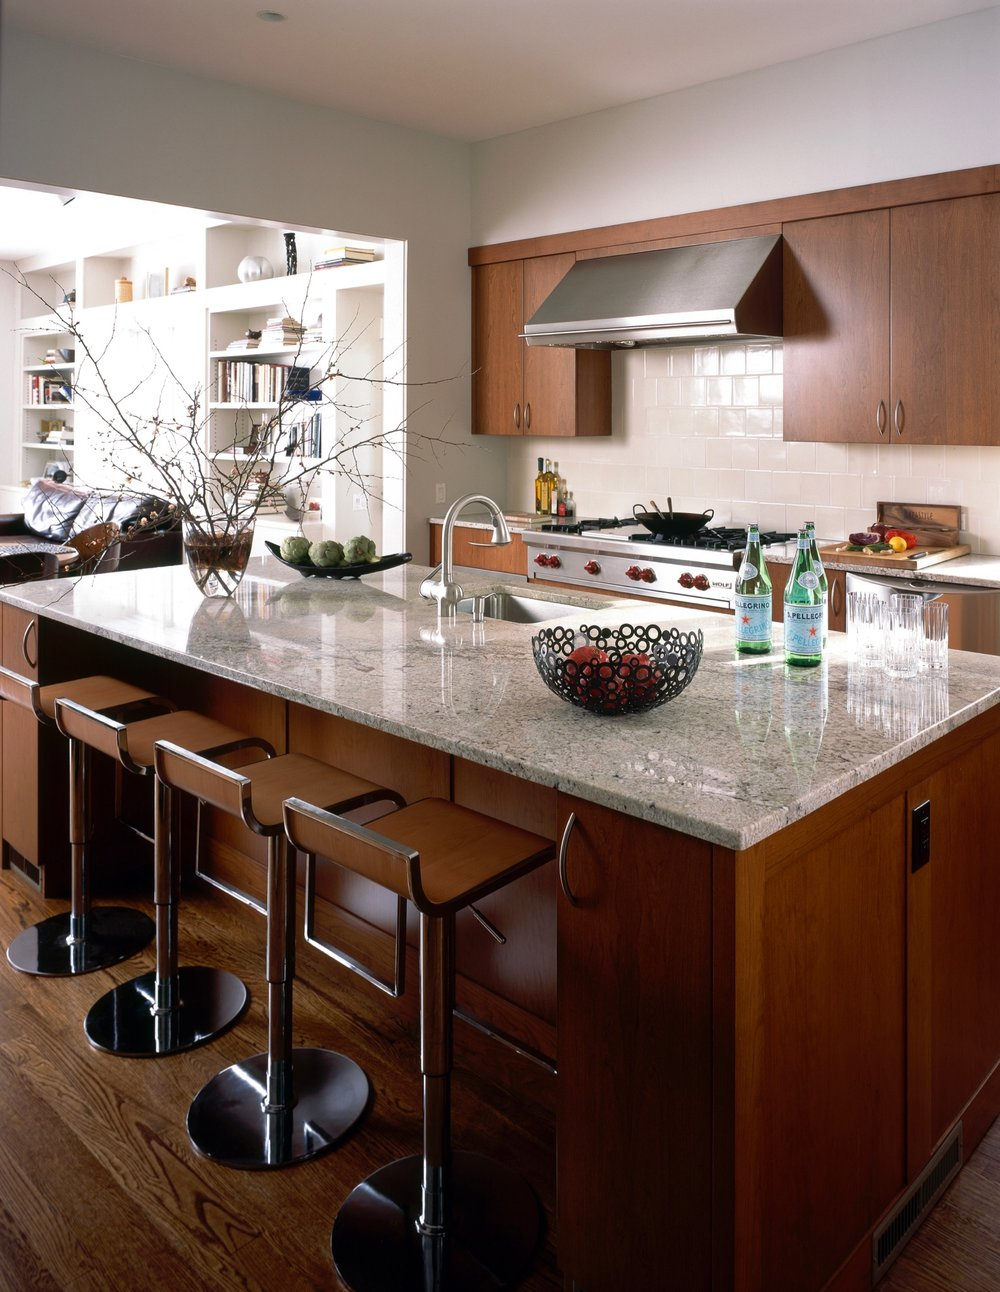 Modern style kitchen with kitchen island and four brown chairs